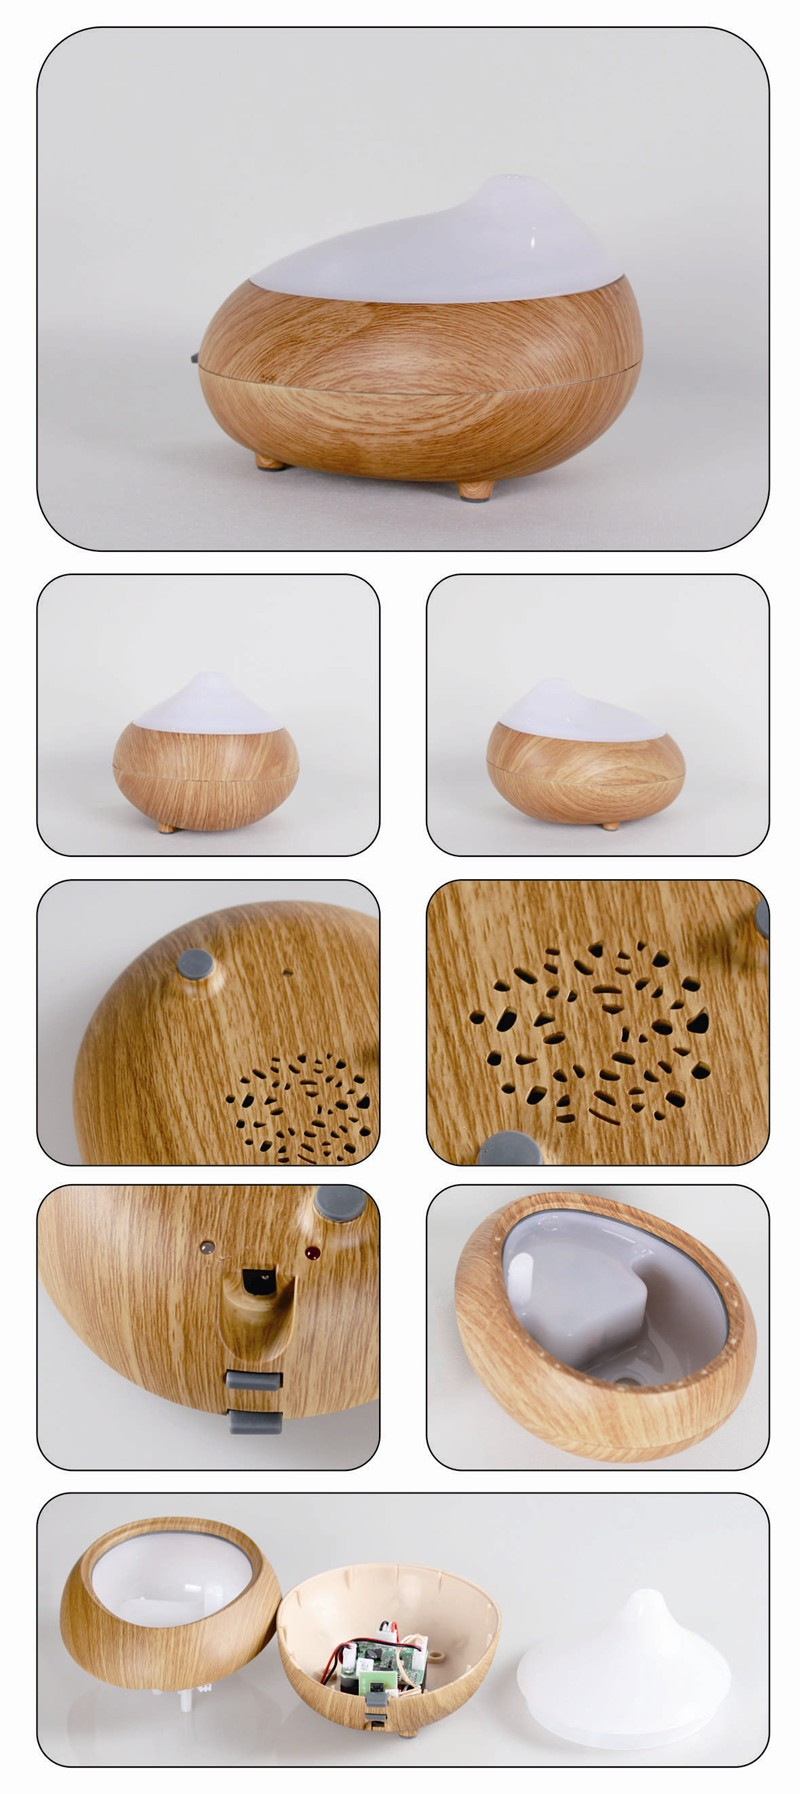 ultrasonic humidifier essential oil fragrance painting aromatherapy diffuser GX-05K wood grain